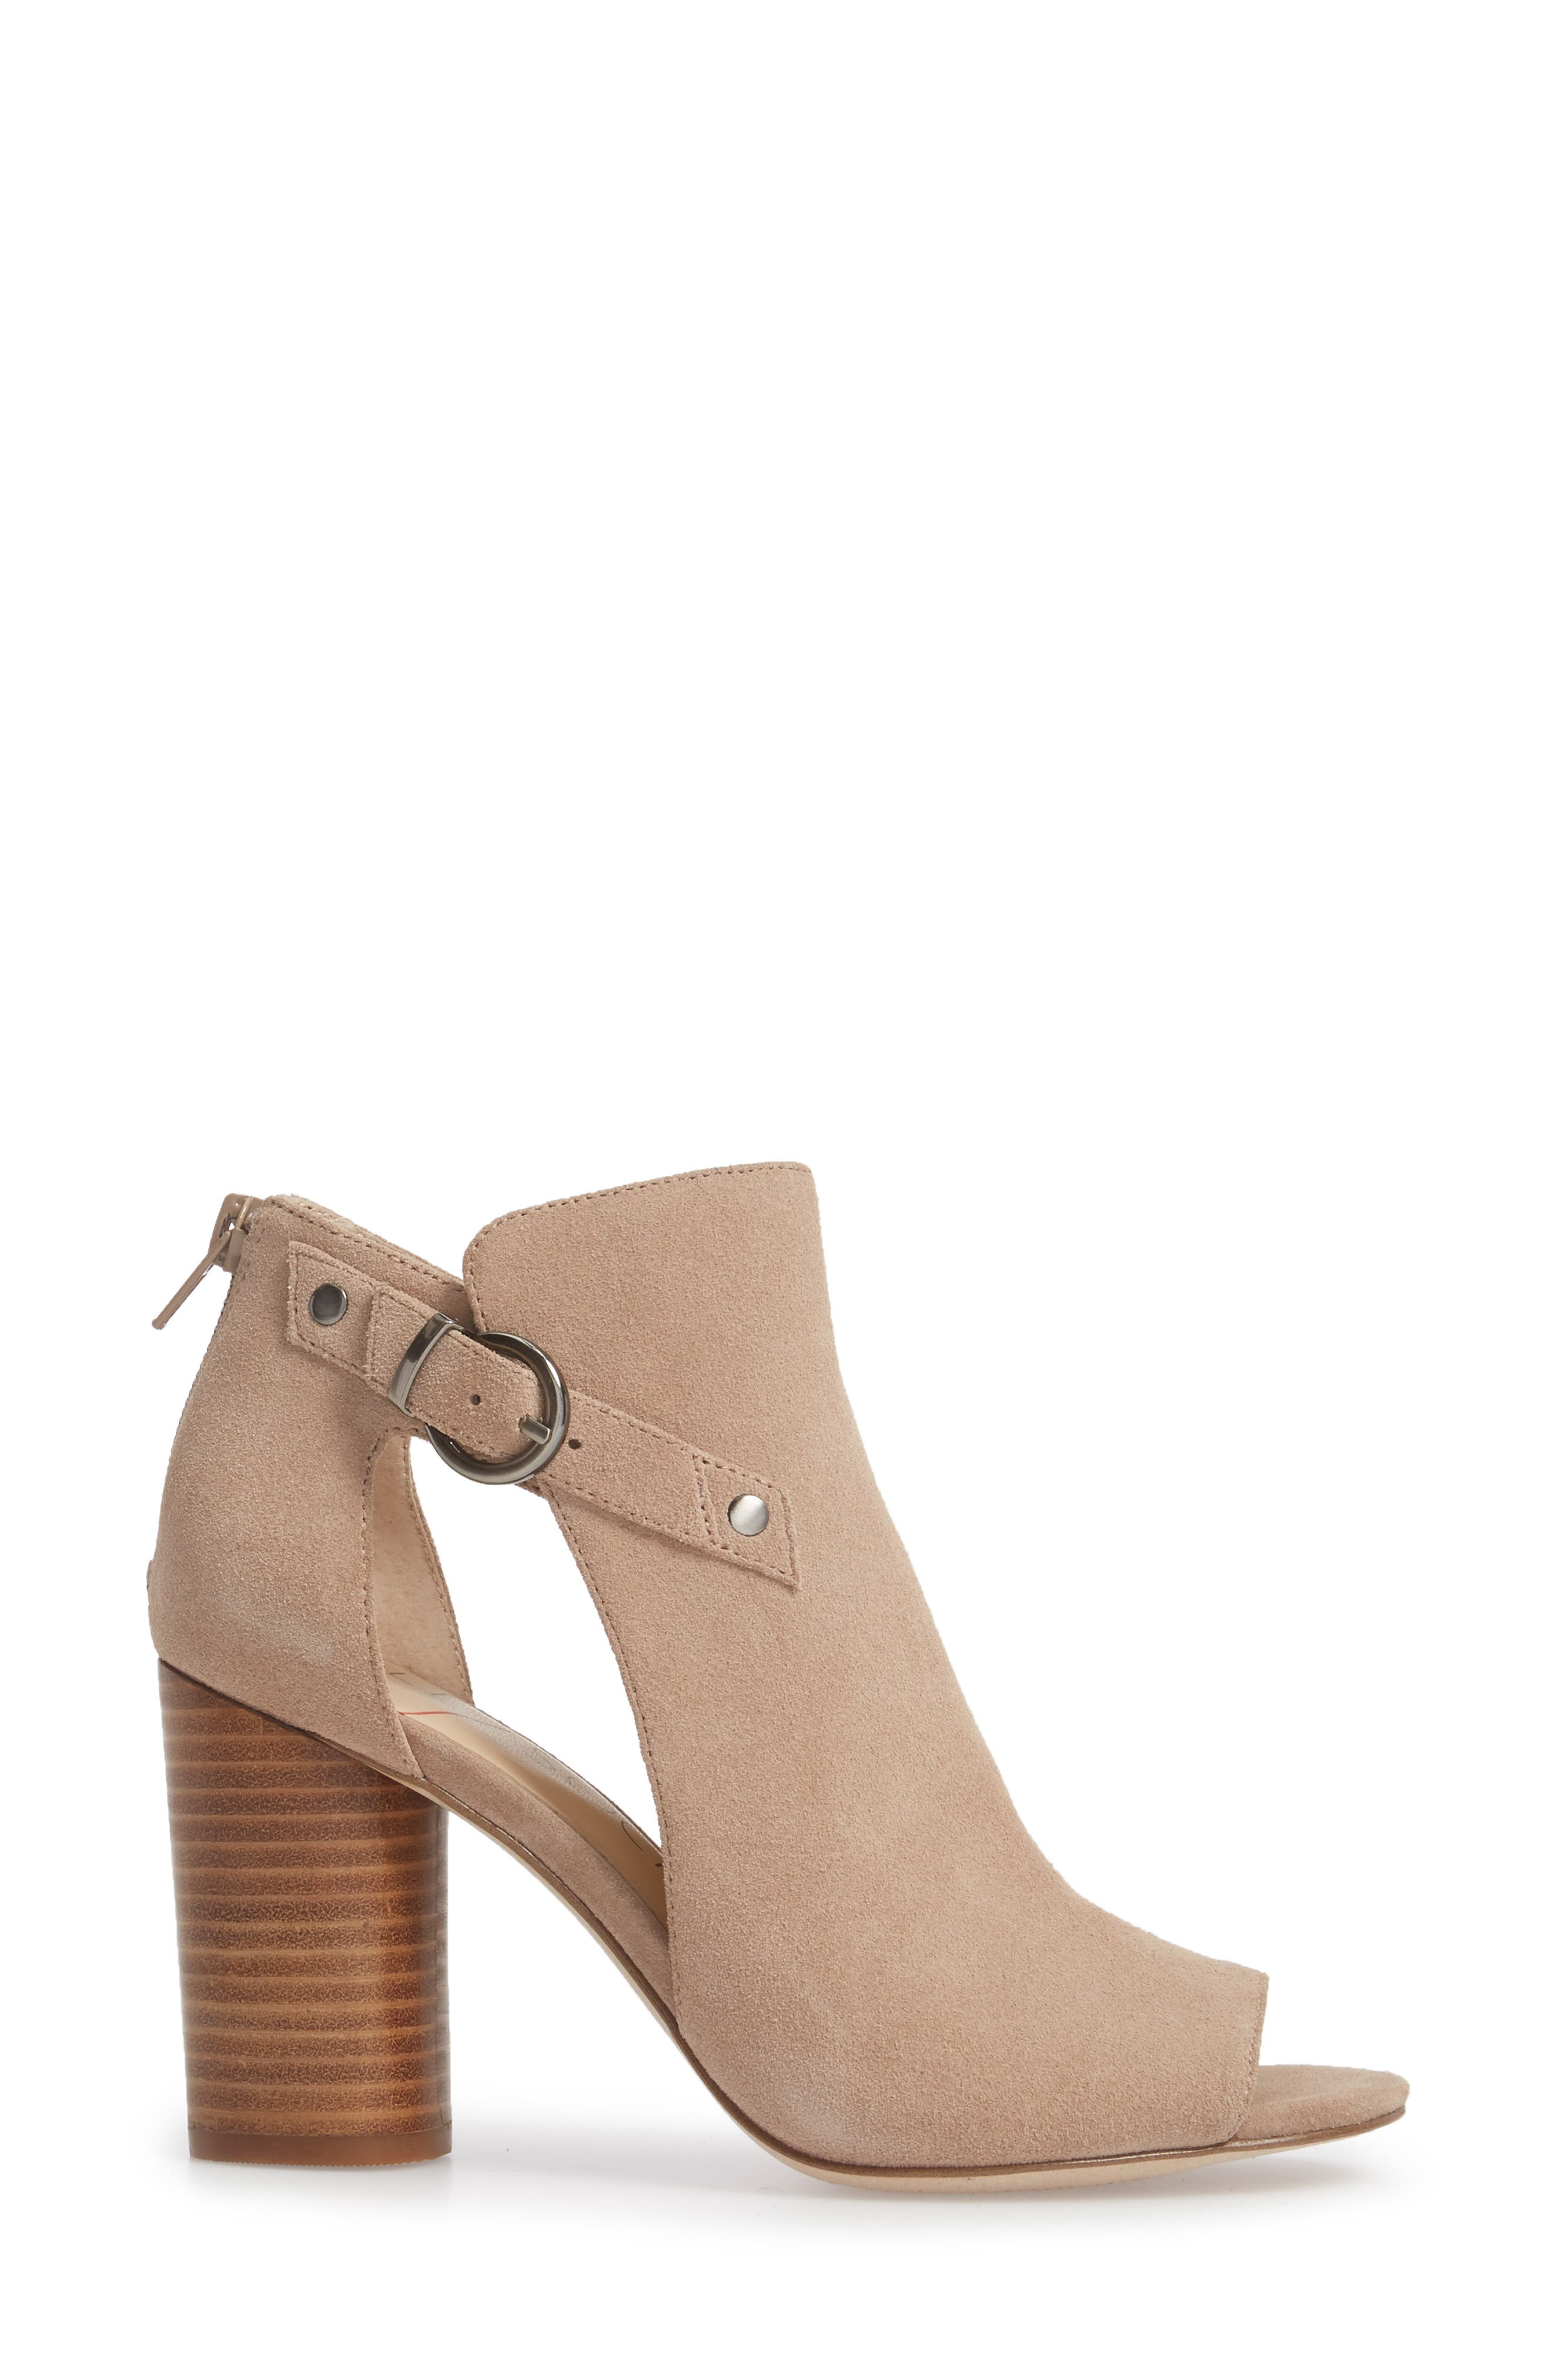 Sally Column Heel Sandal,                             Alternate thumbnail 3, color,                             Warm Taupe Cow Suede